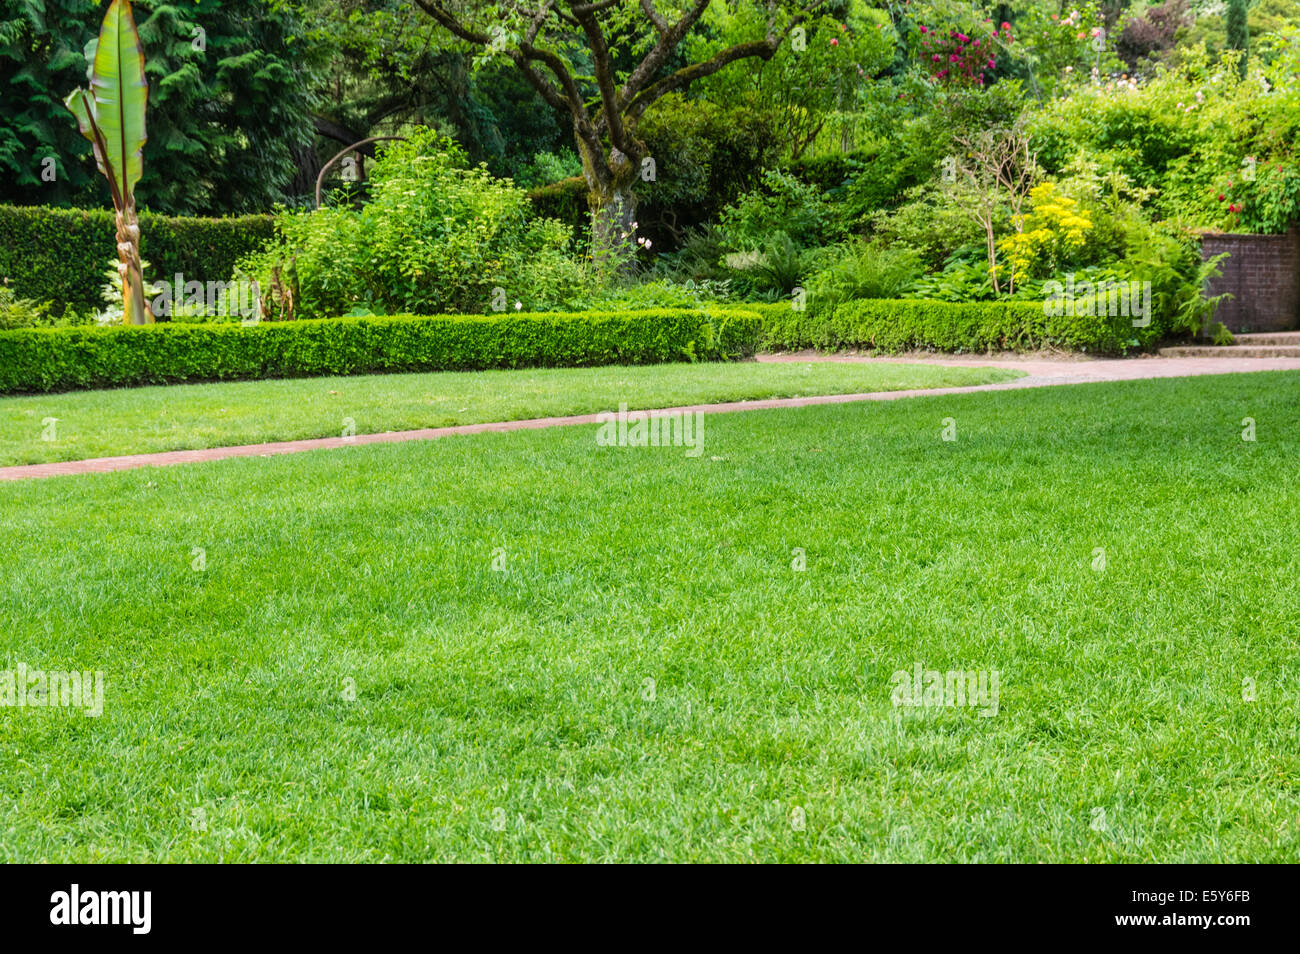 Green fresh lawn and brick pathway in a large public garden with hedges and flower beds - Stock Image